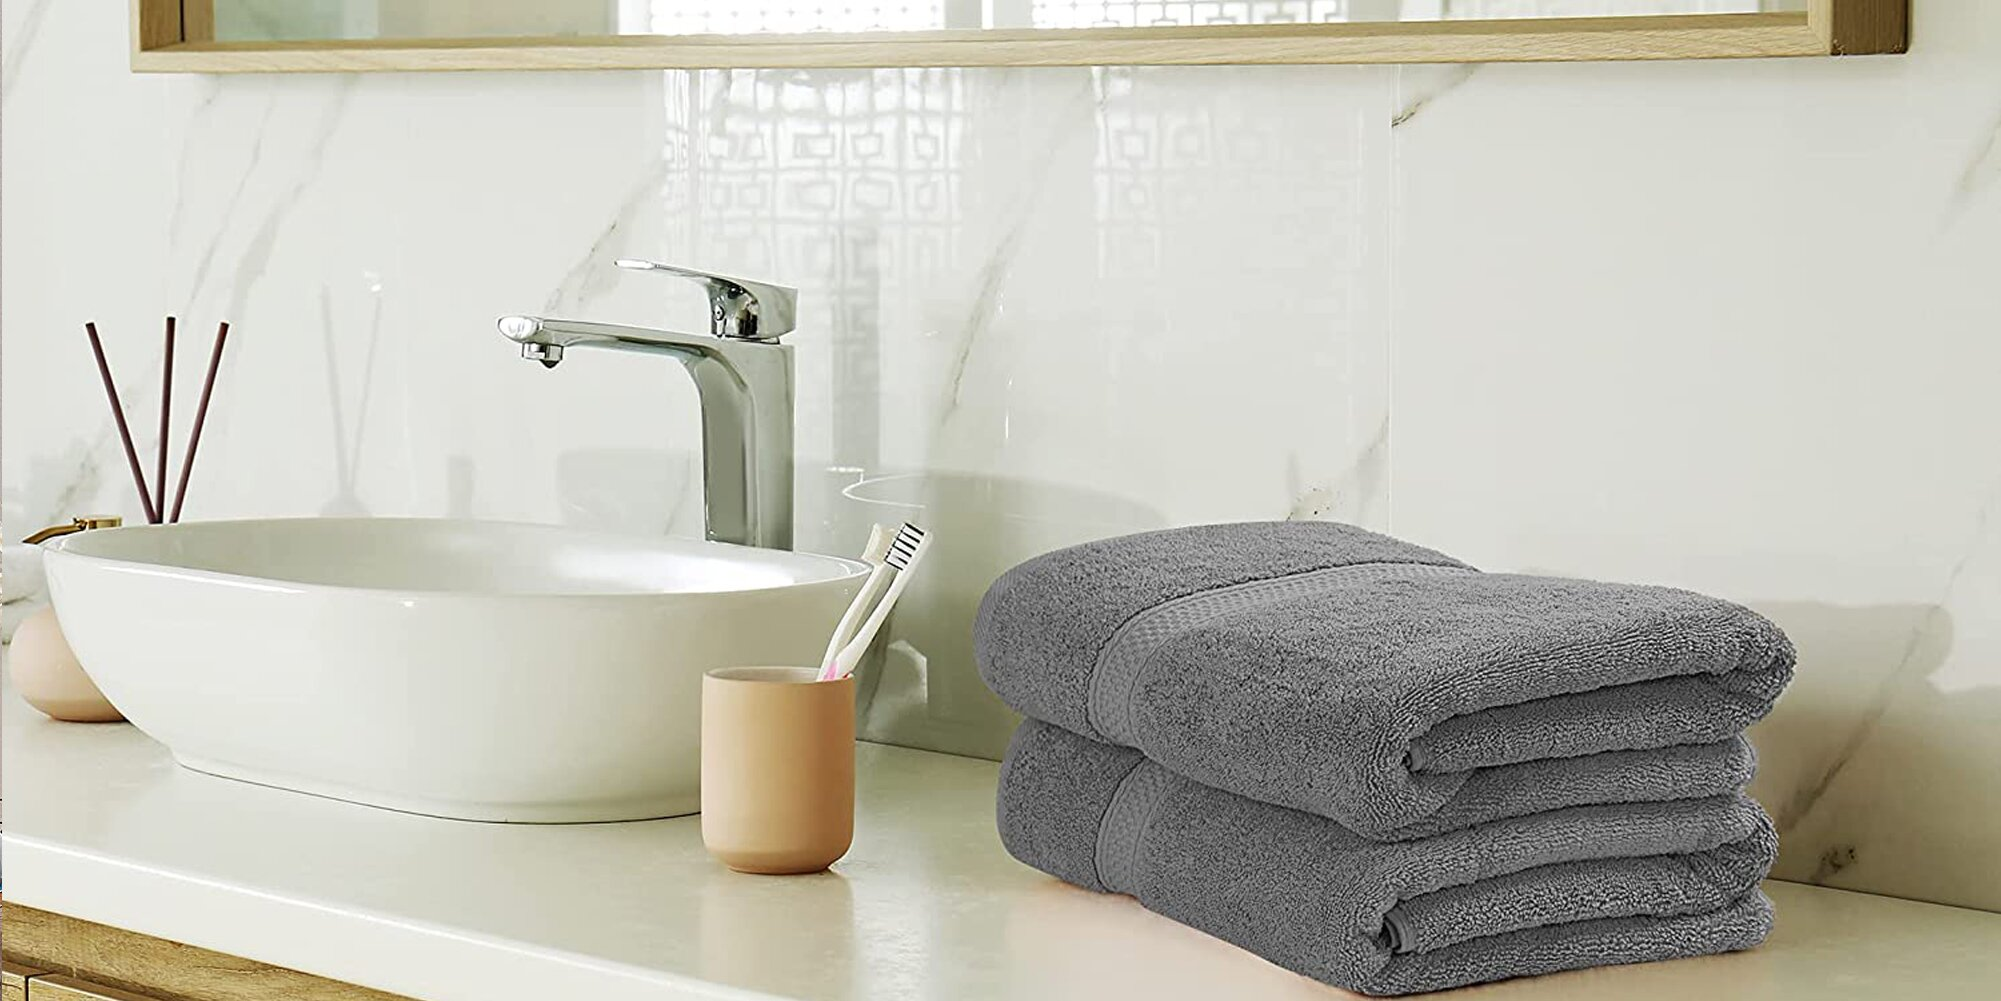 This 8-Piece Towel Set Has 33,000+ Ratings, and It's $25 on Amazon